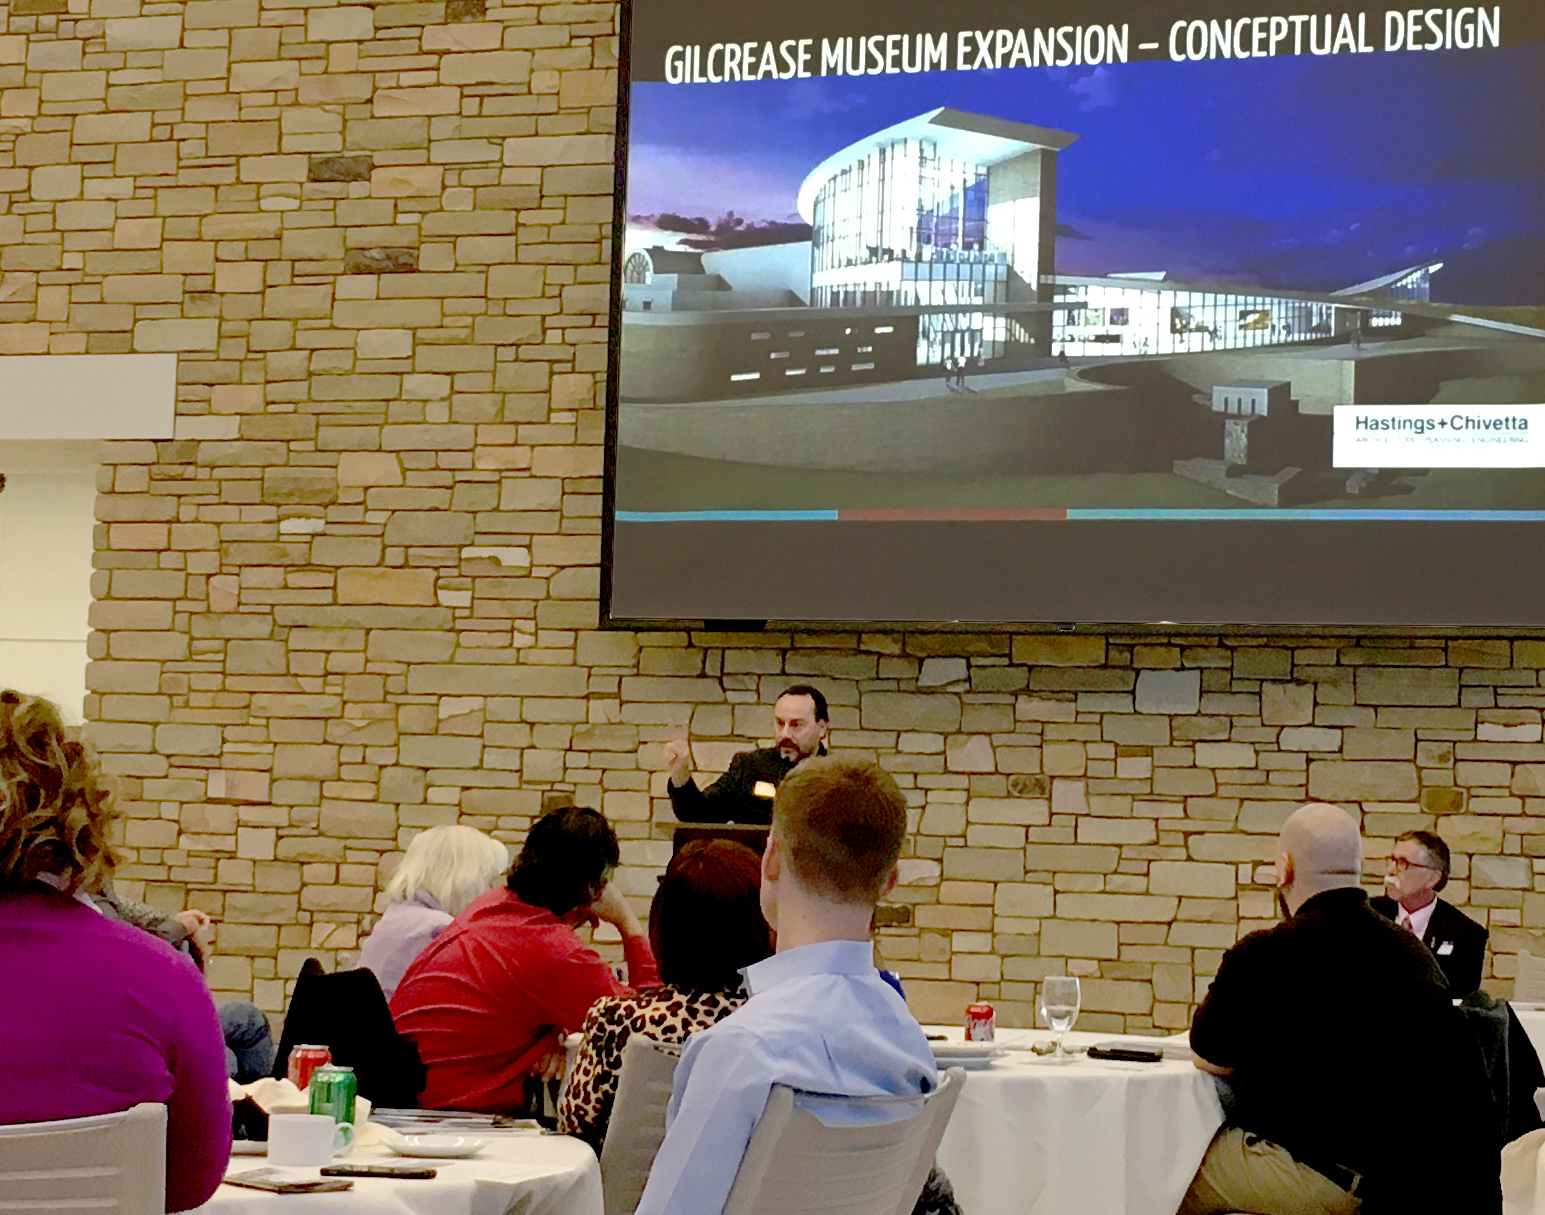 Gilcrease Museum to expand; bus tours now entering Osage County